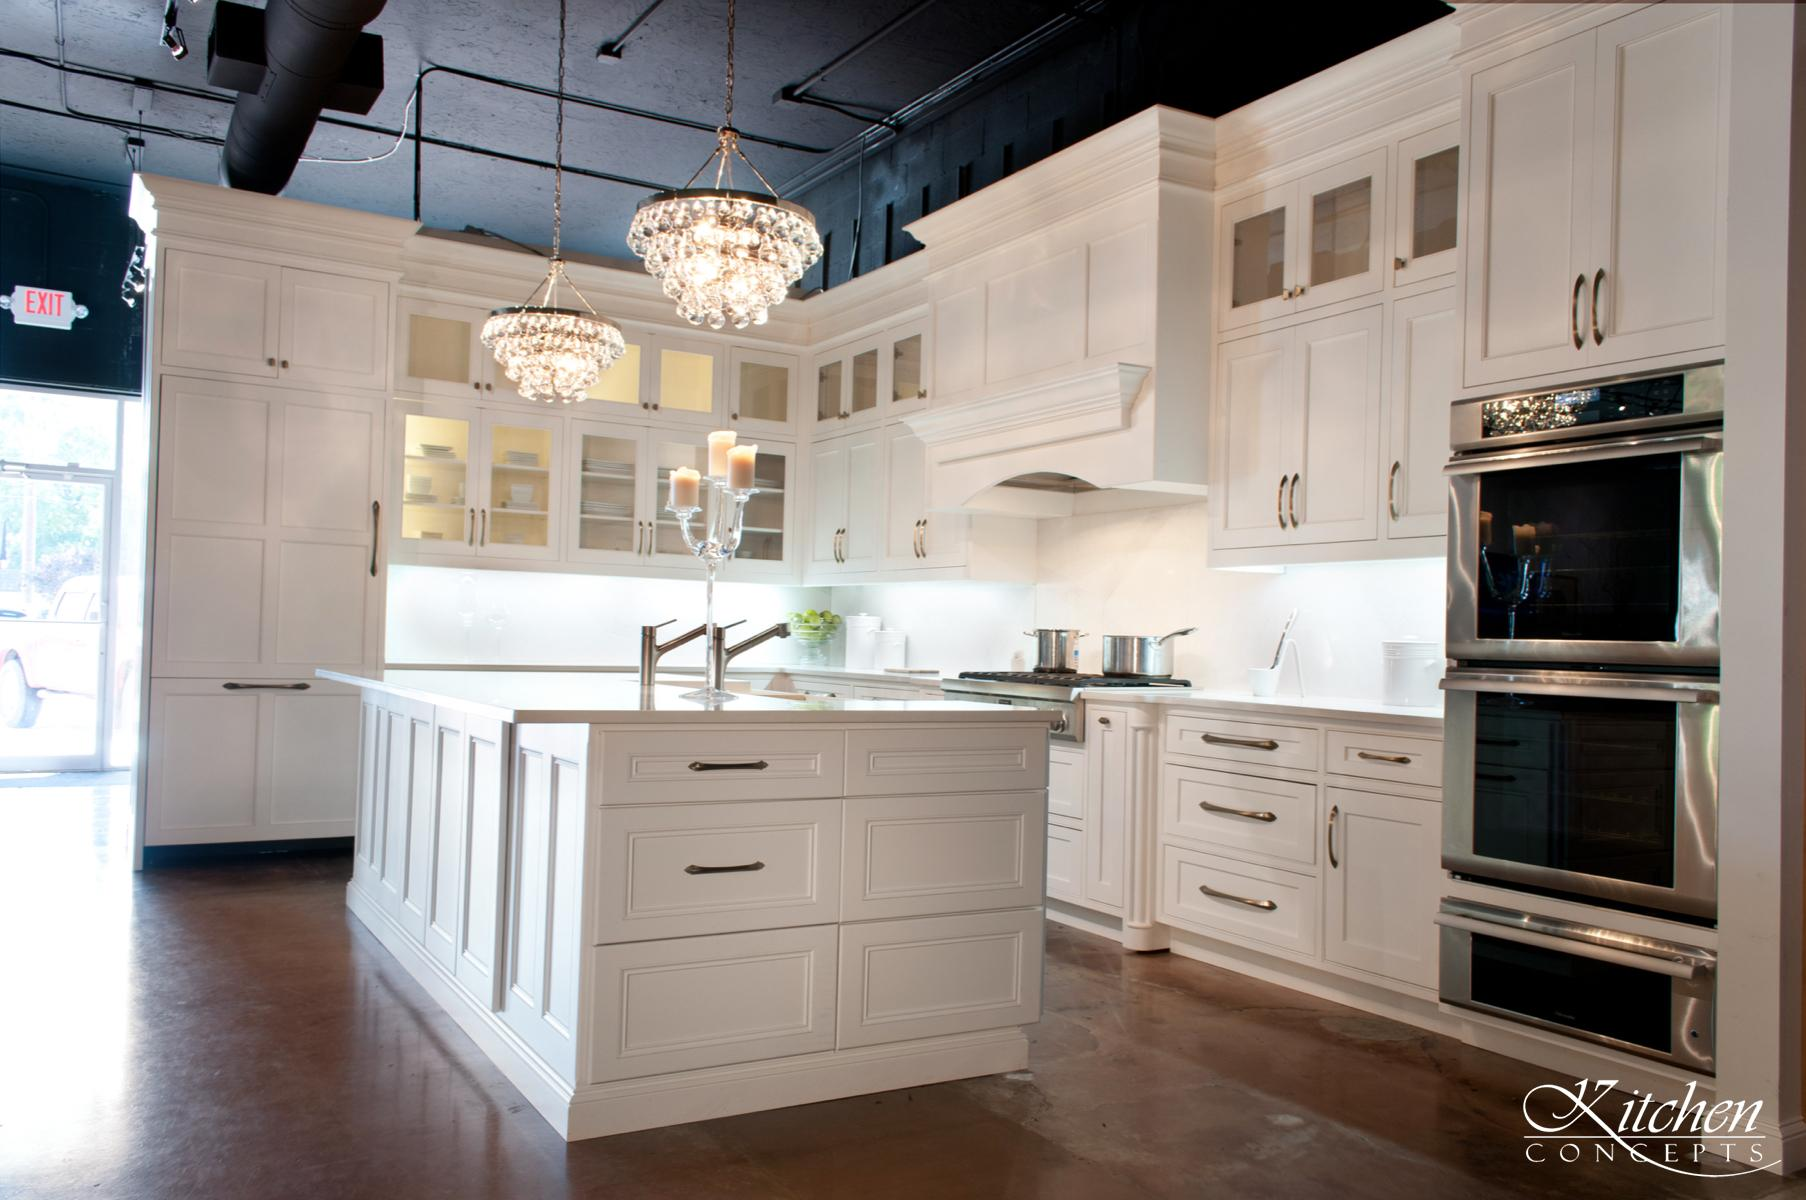 Custom White Kitchen at Kitchen Concepts